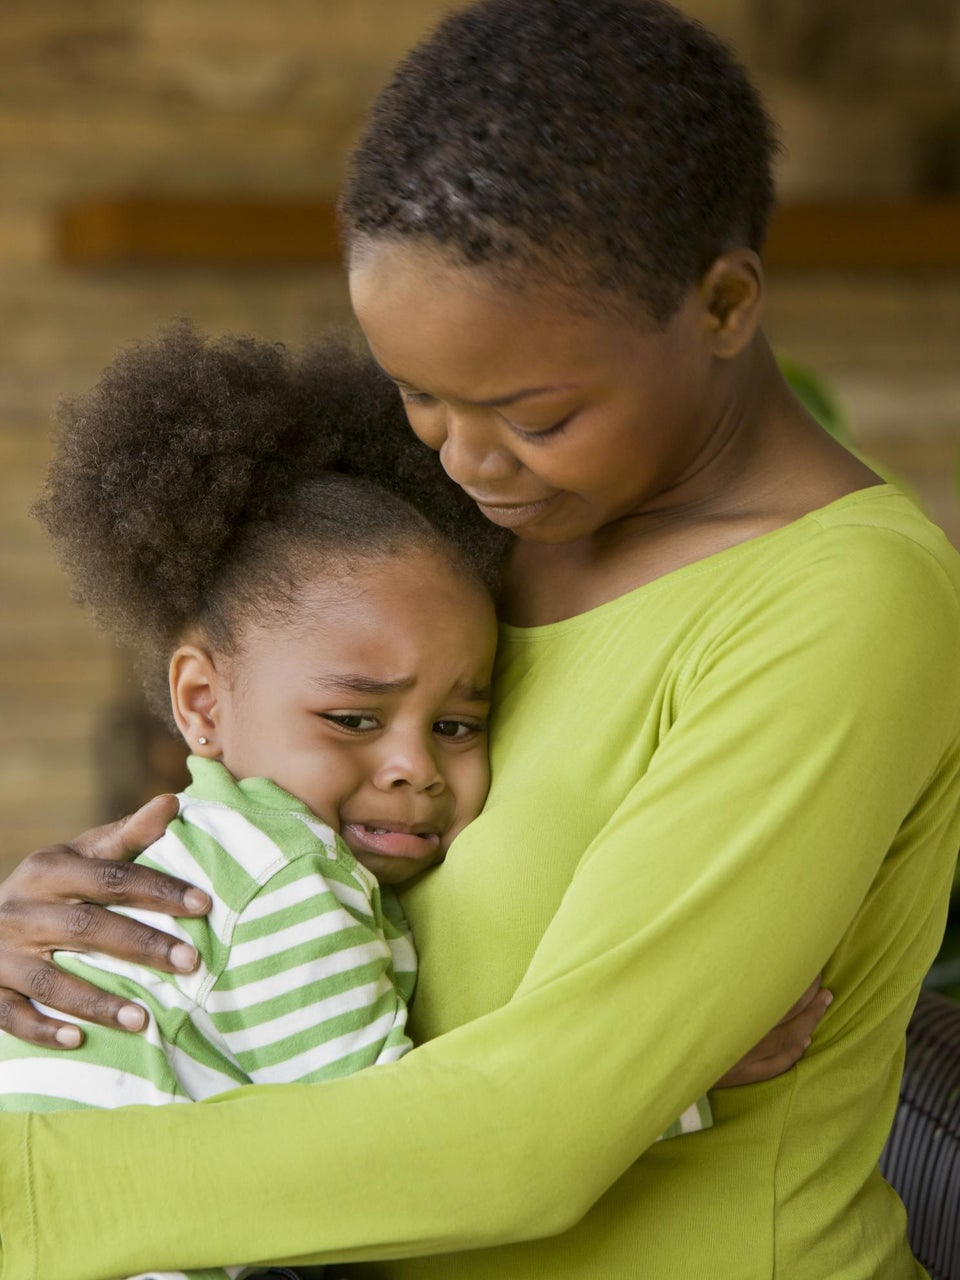 ESSENCE Poll: Would You Intervene If You Saw a Mother Struggling With Her Child?